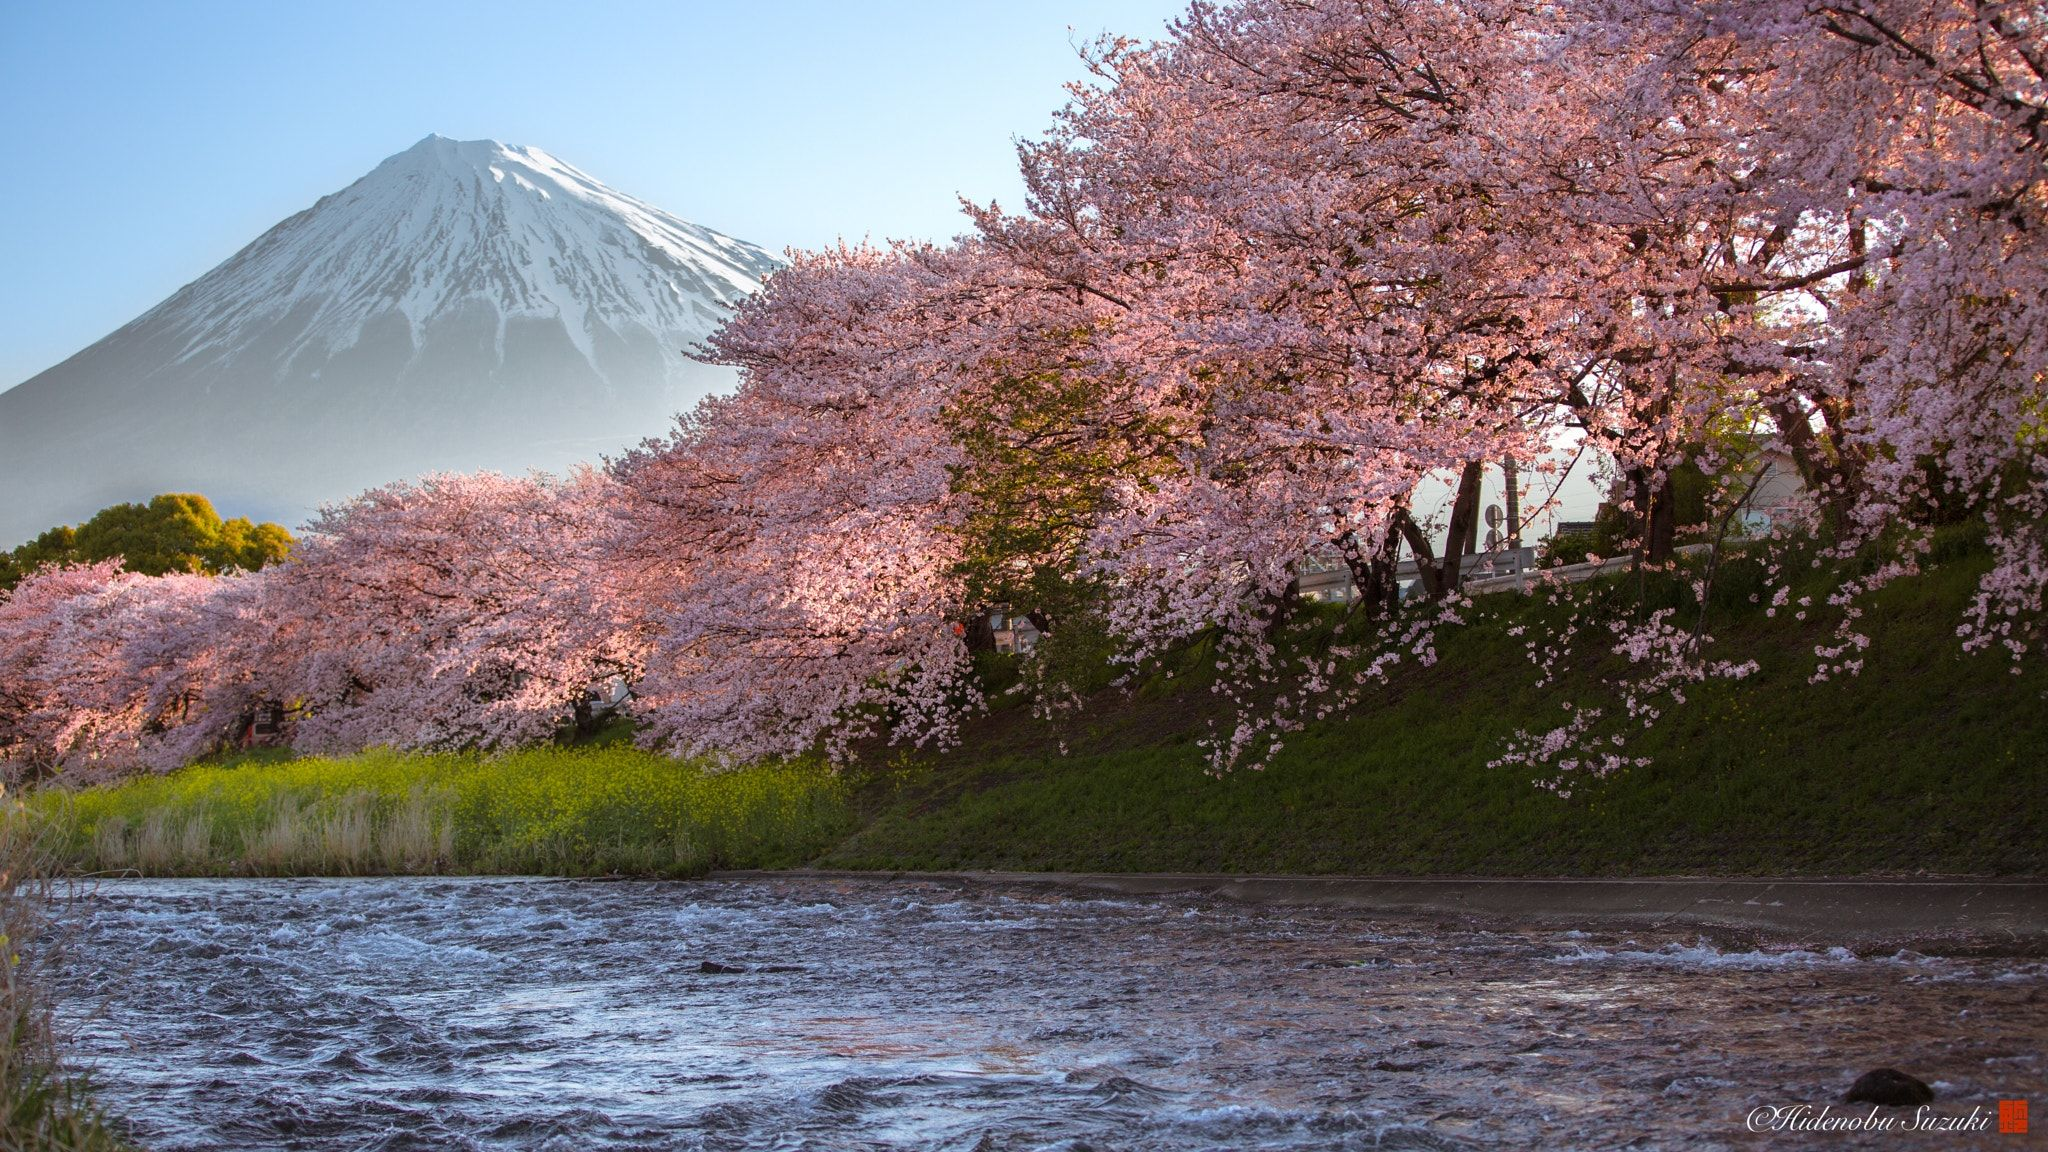 Spring Sunny Day Cherry Blossom Day In Full Bloom Mount Fuji - Calming photos of japans landscapes captured by hidenobu suzuki